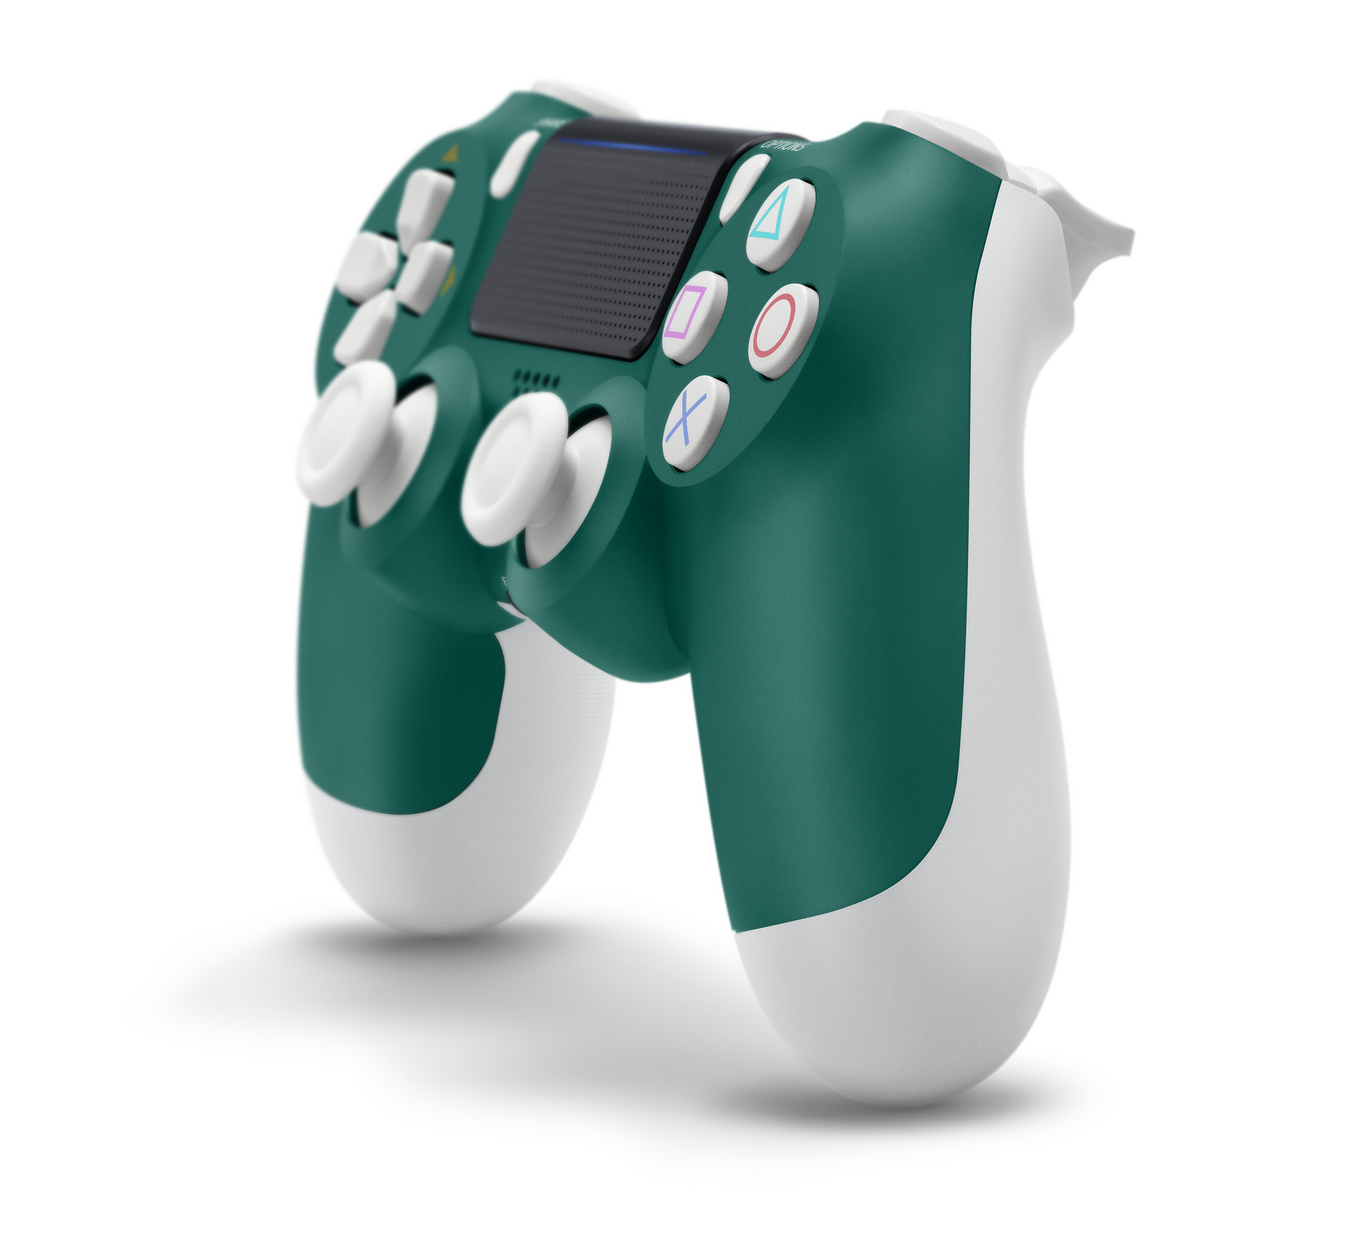 Alpine Green PS4 controller with gold accents